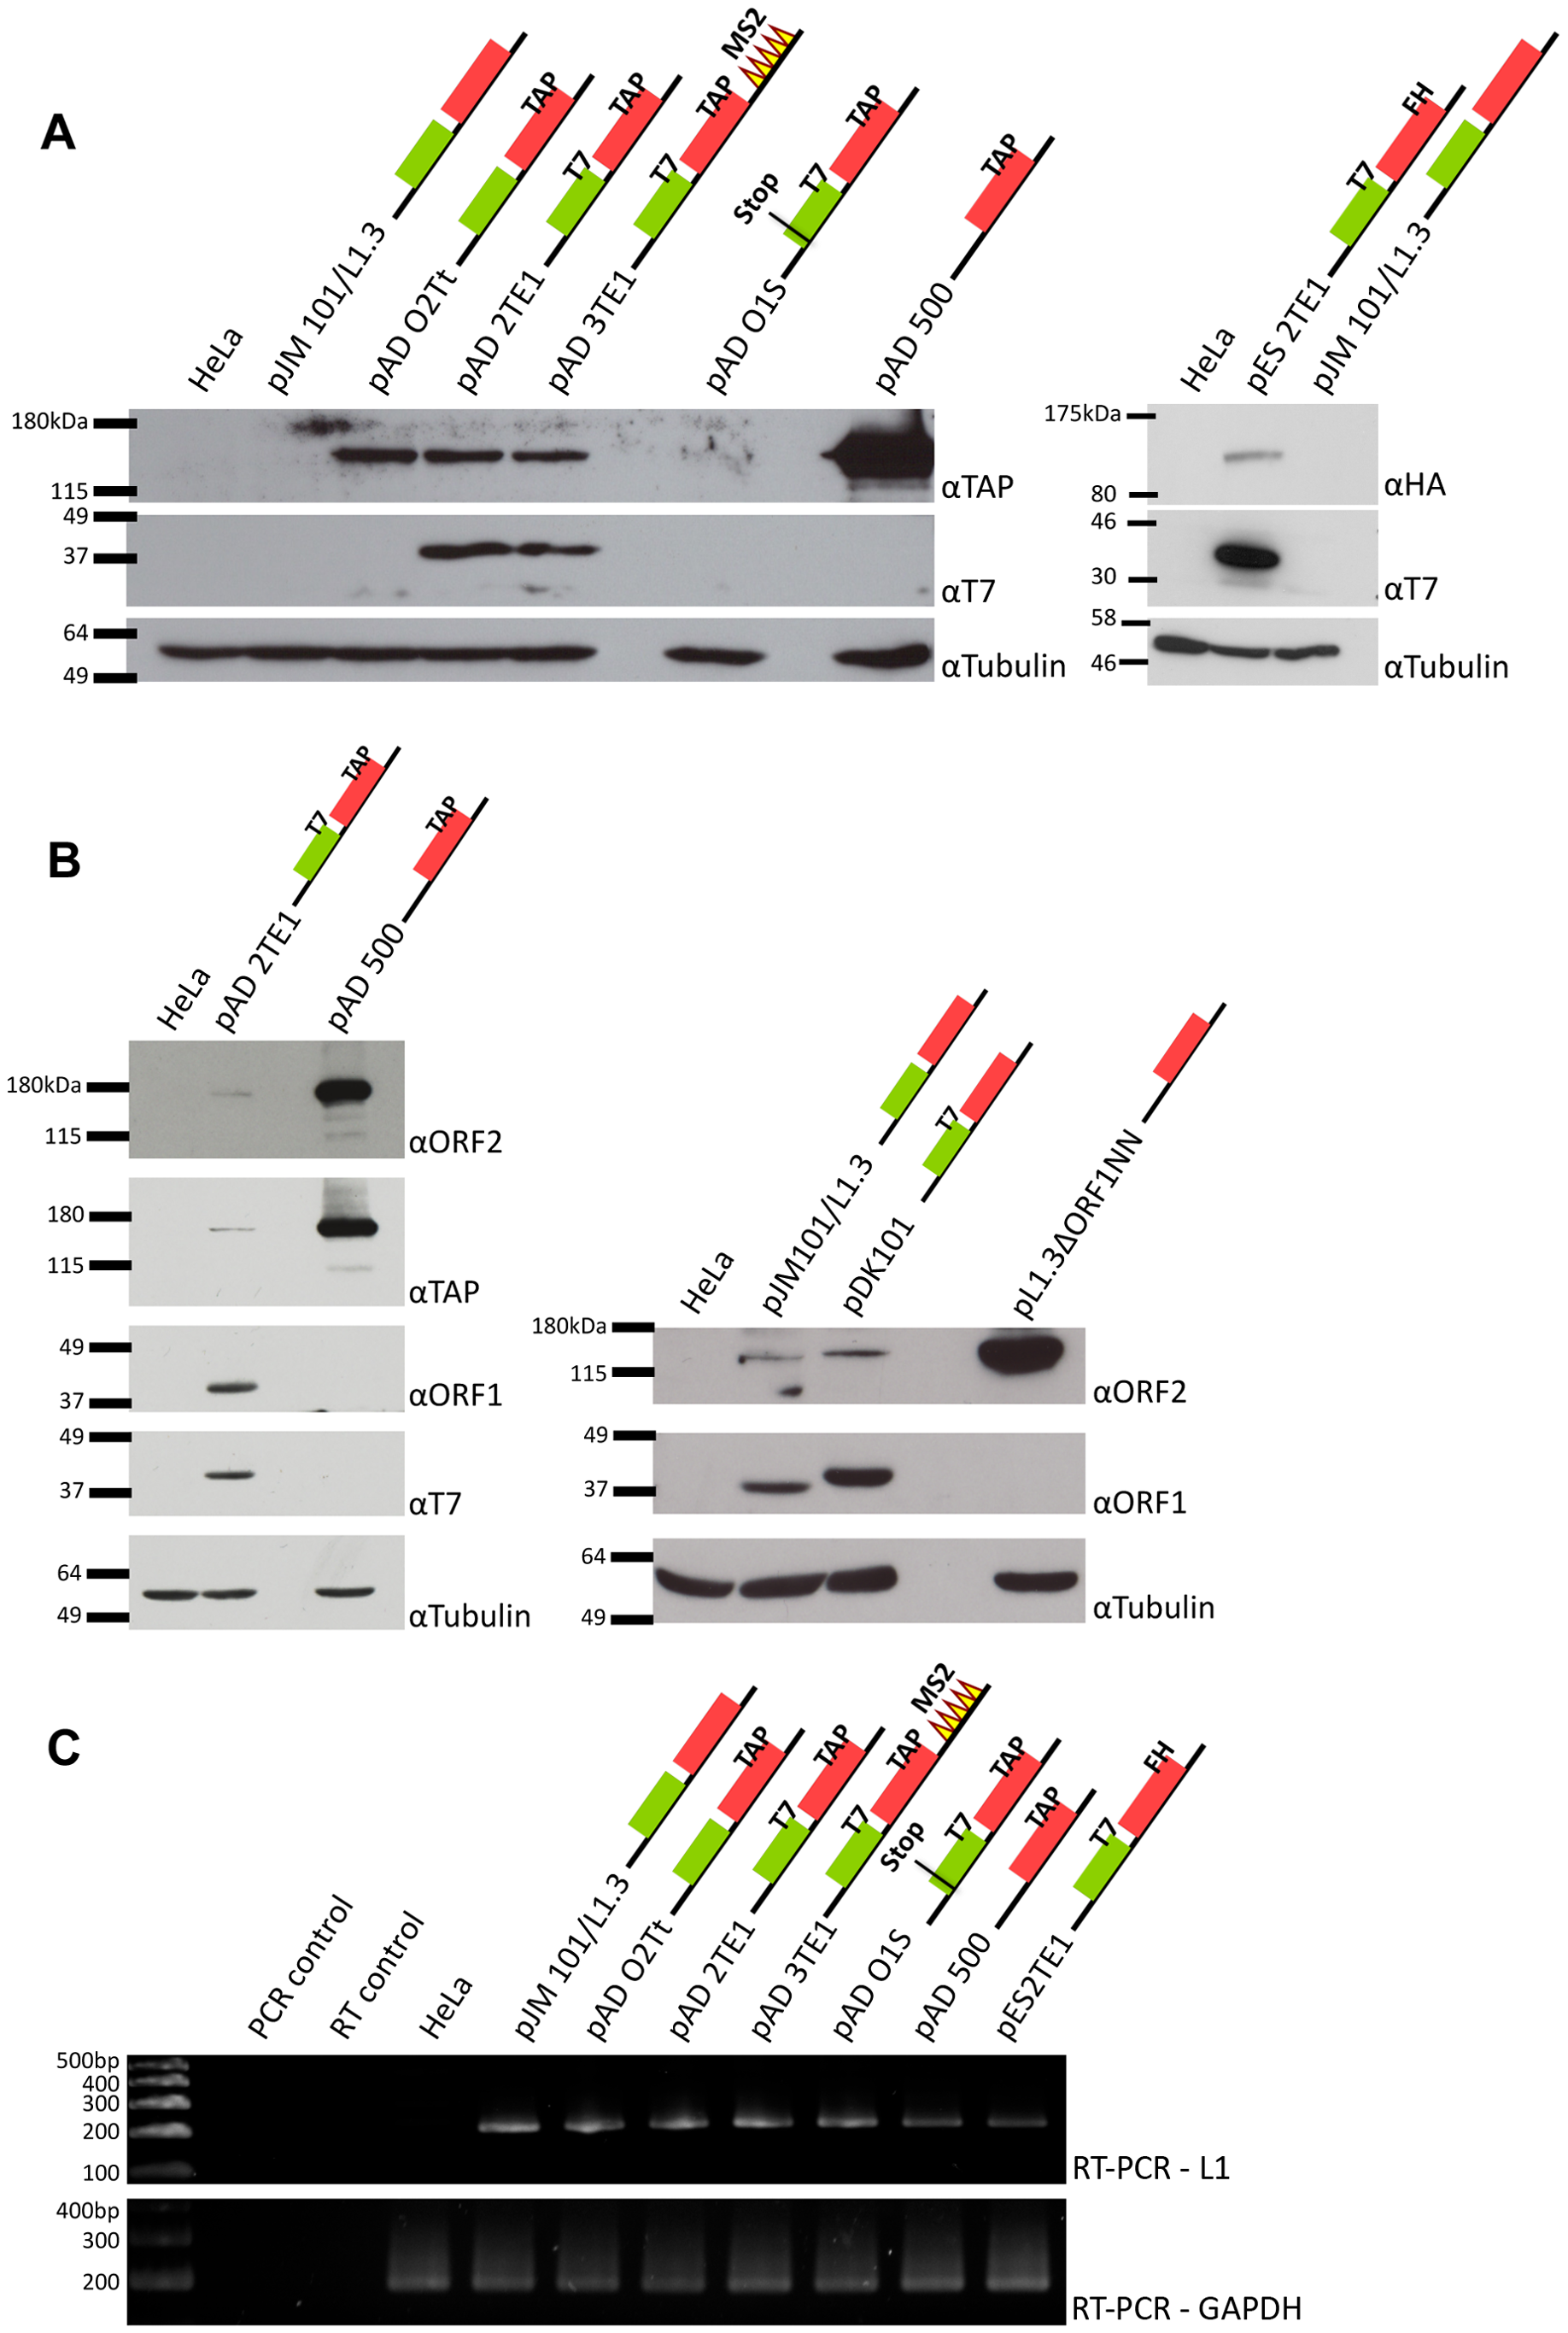 Detection of ORF1p and ORF2p from engineered L1 constructs.